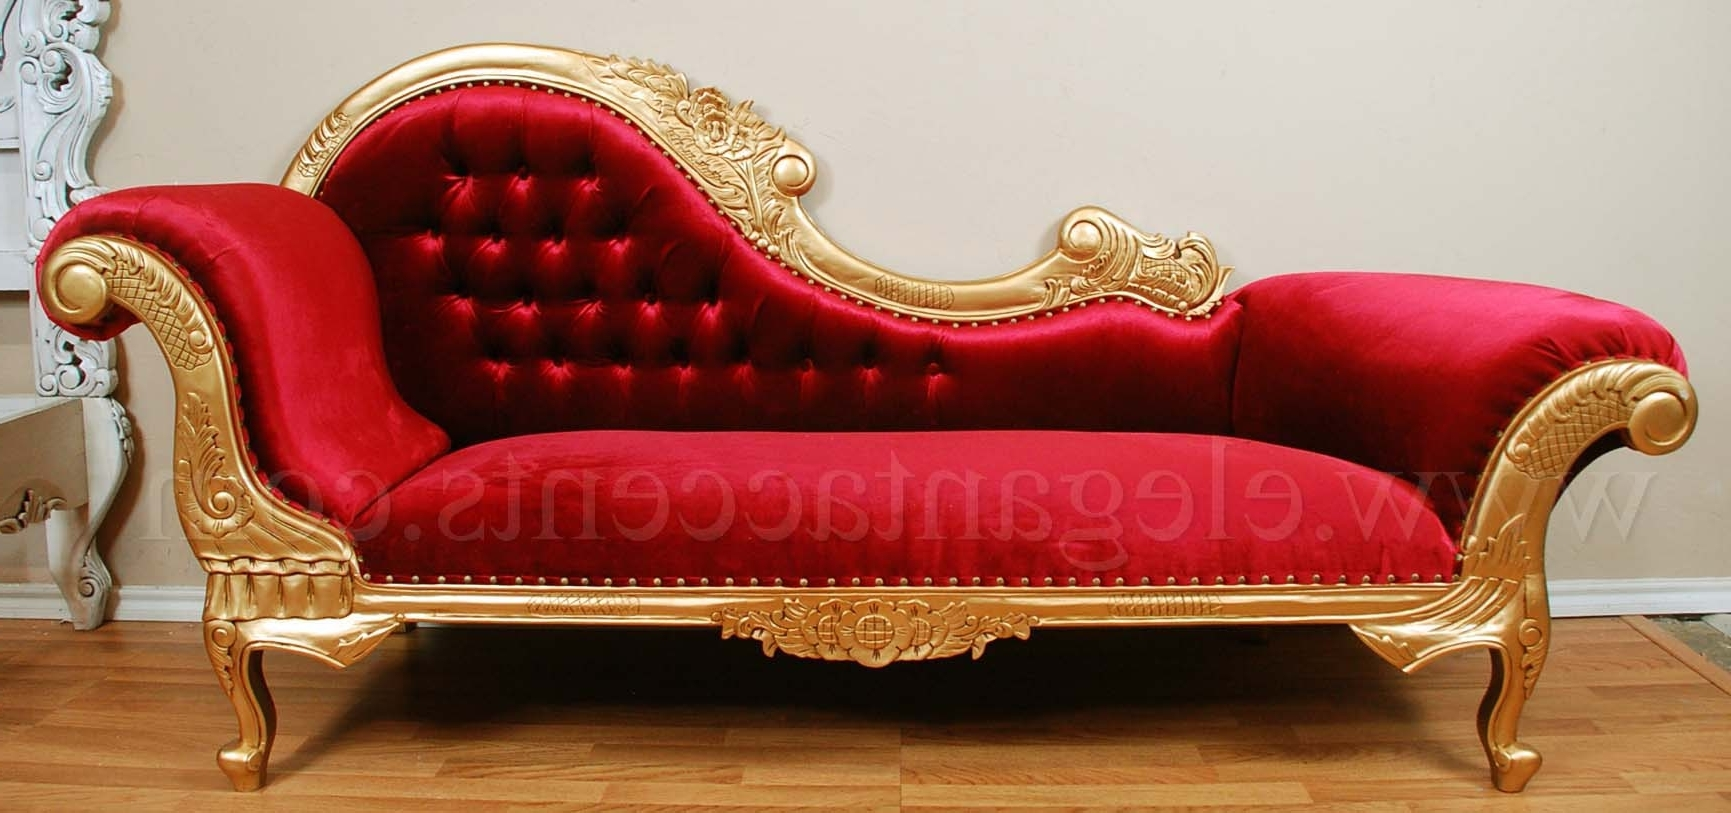 Gold Chaise Lounges With Regard To Popular Impressive On Victorian Chaise Lounge With Victorian Chaise Gold (View 8 of 15)